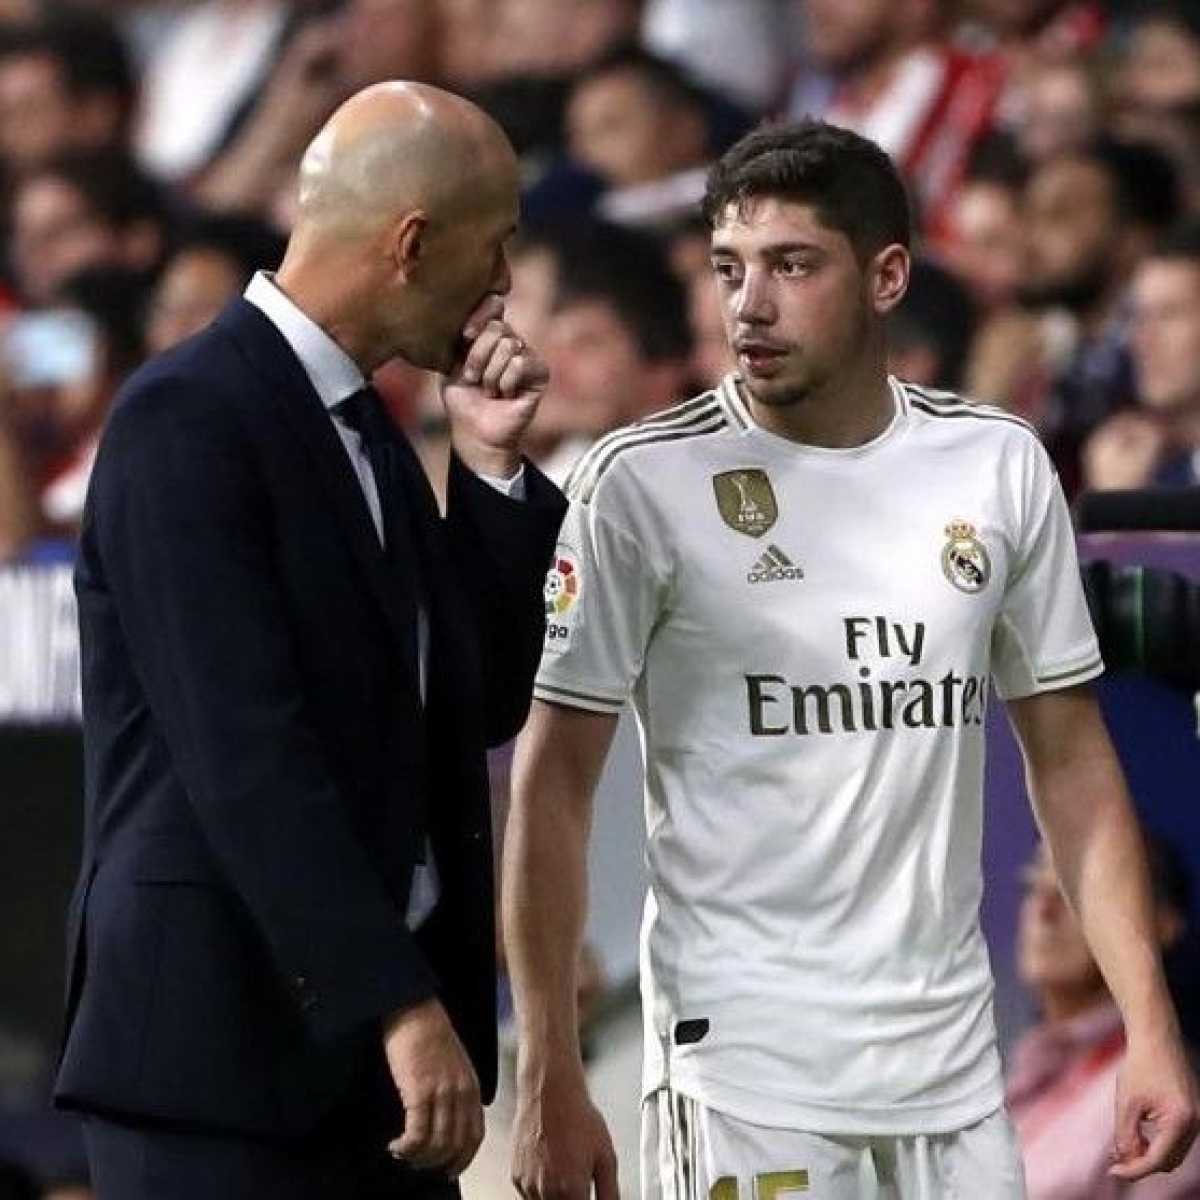 Uruguayan midfielder Federico Valverde credits legend Zinedine Zidane for helping him flourish at Real Madrid